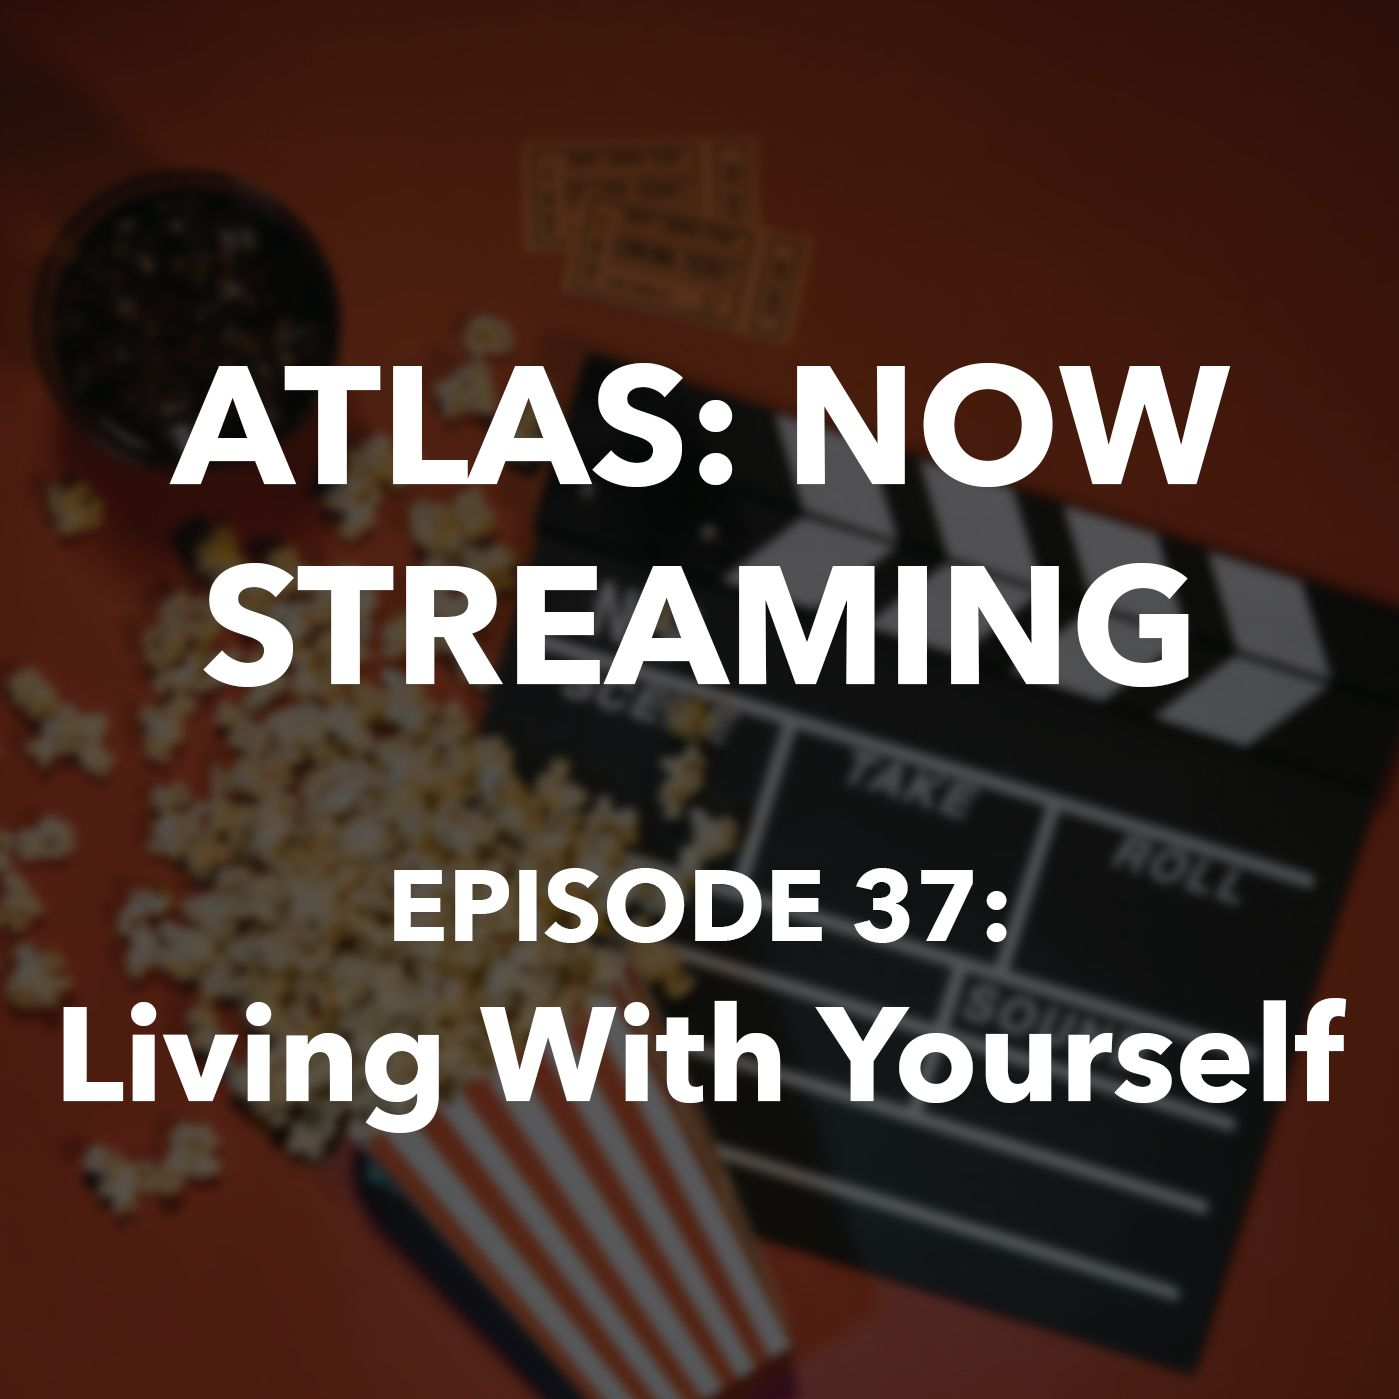 Living With Yourself - Atlas: Now Streaming Episode 37